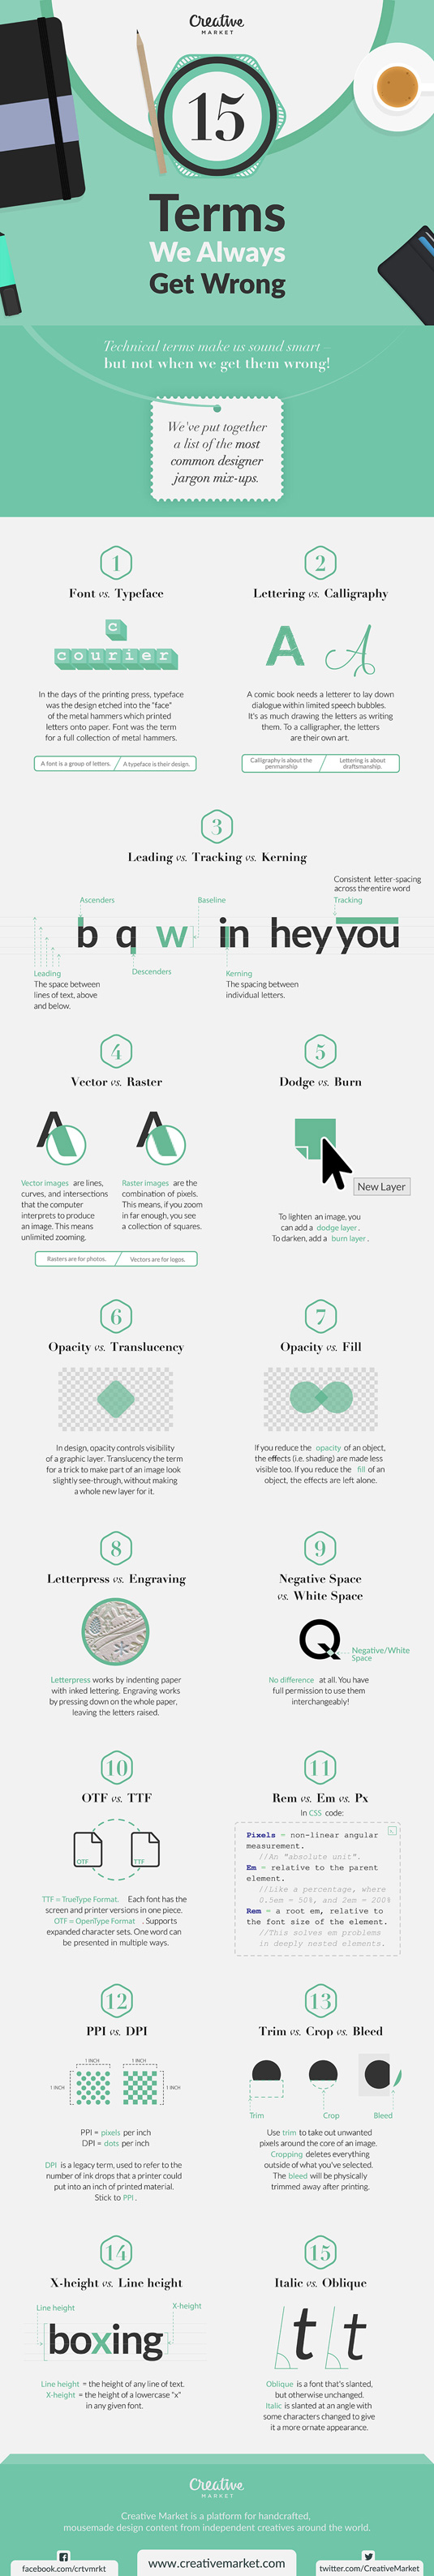 Design terms infographic